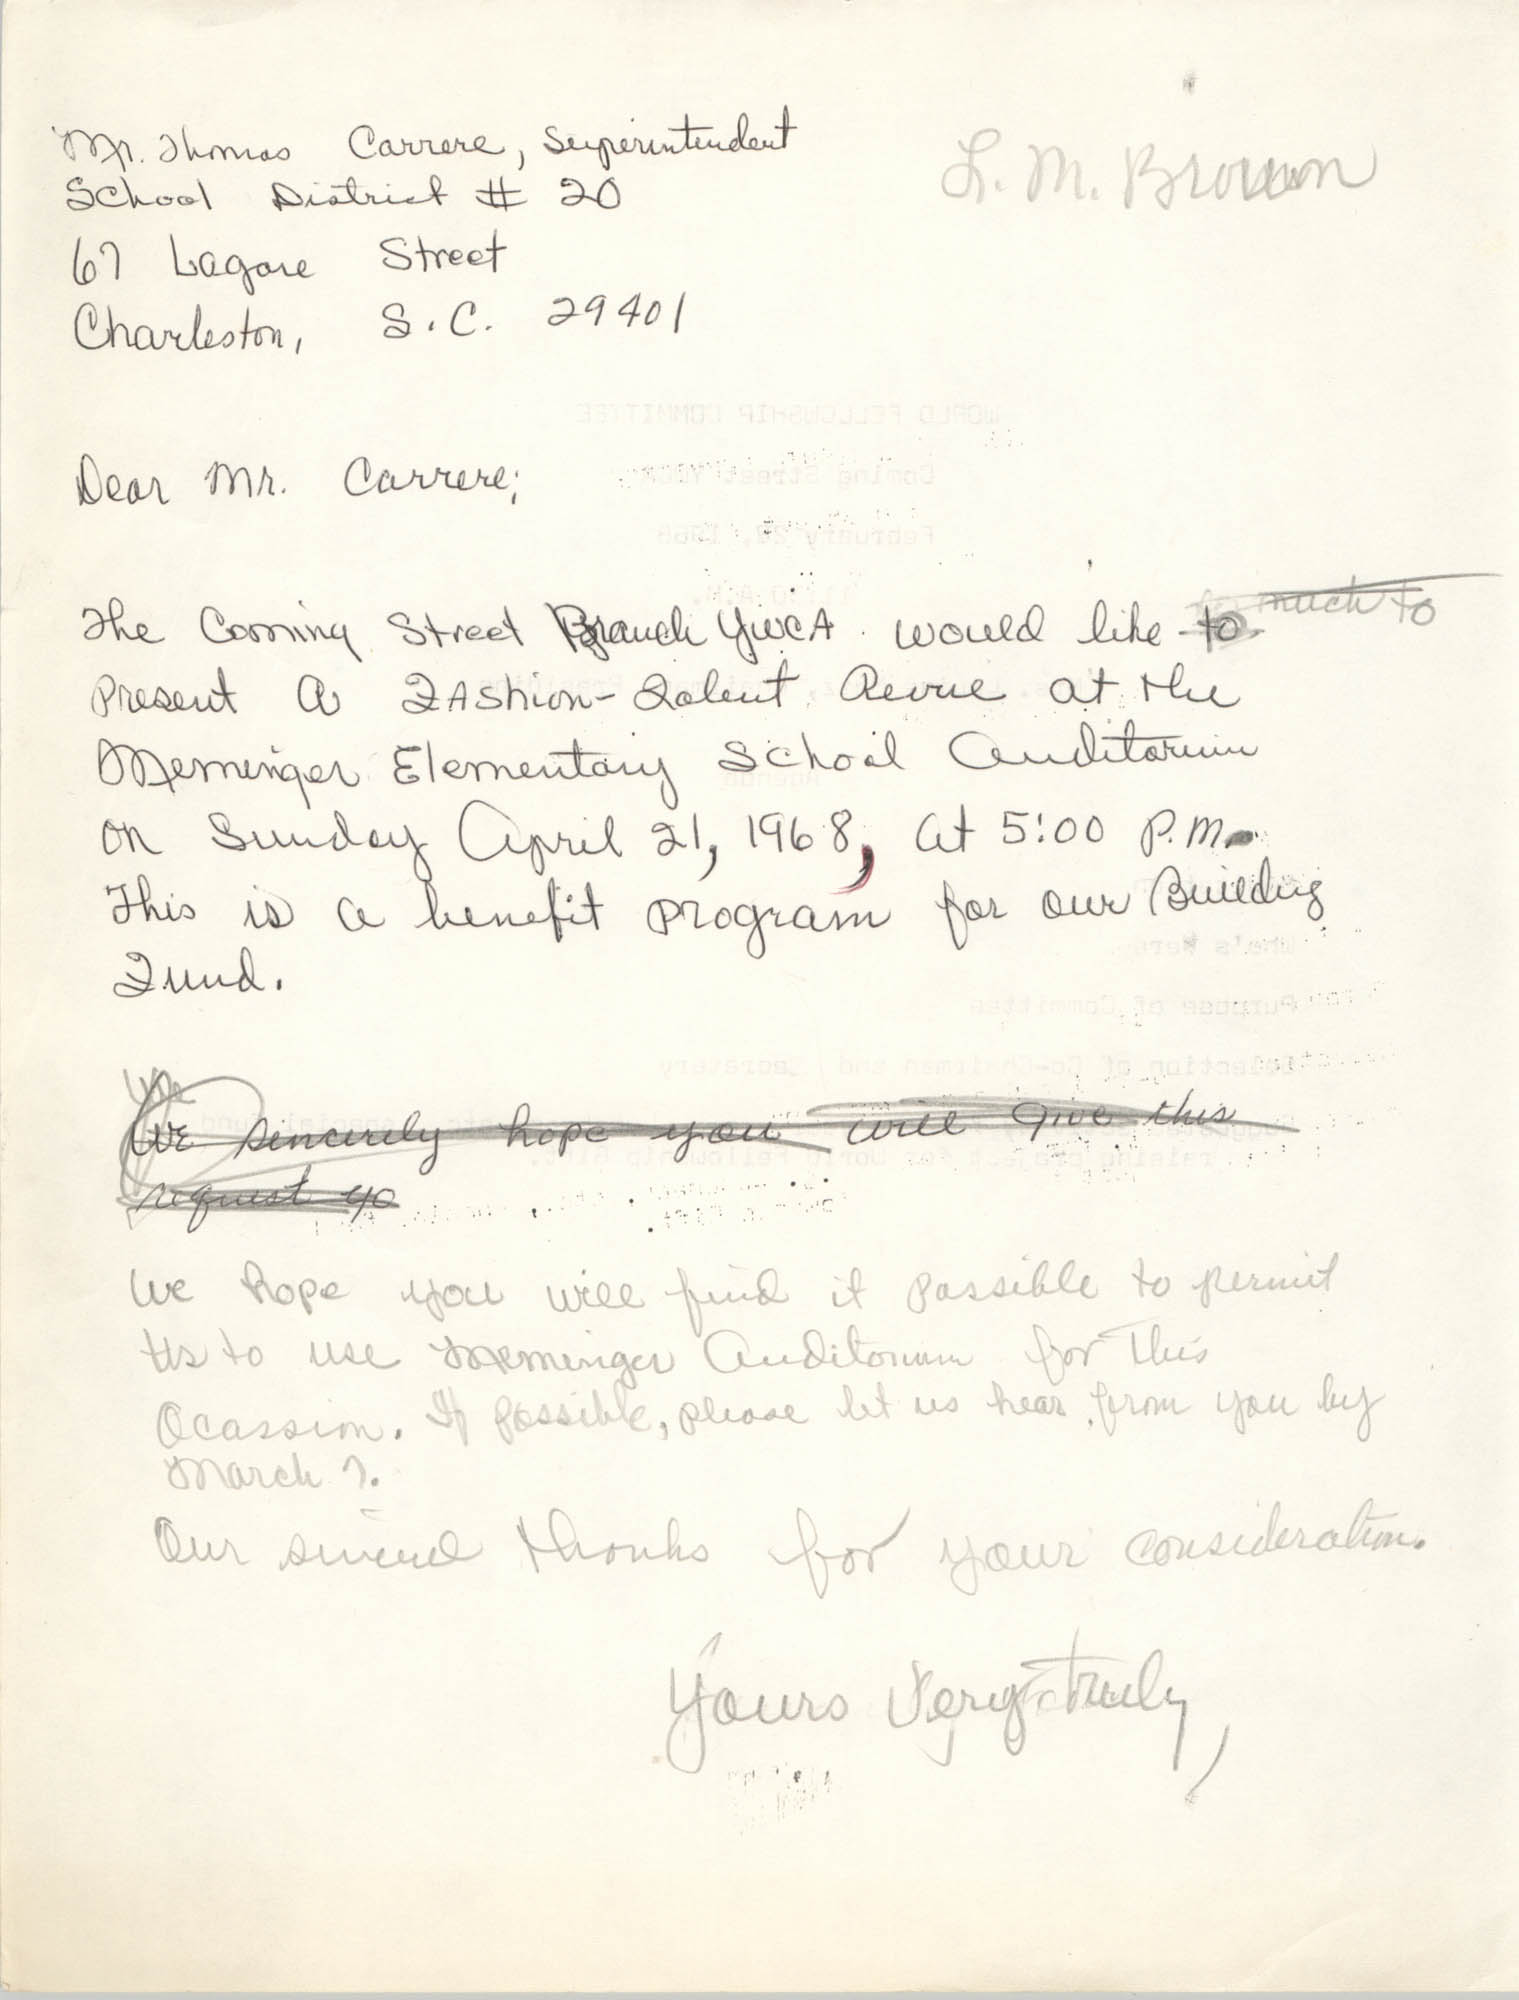 Letter to Thomas Carrere, April 1968